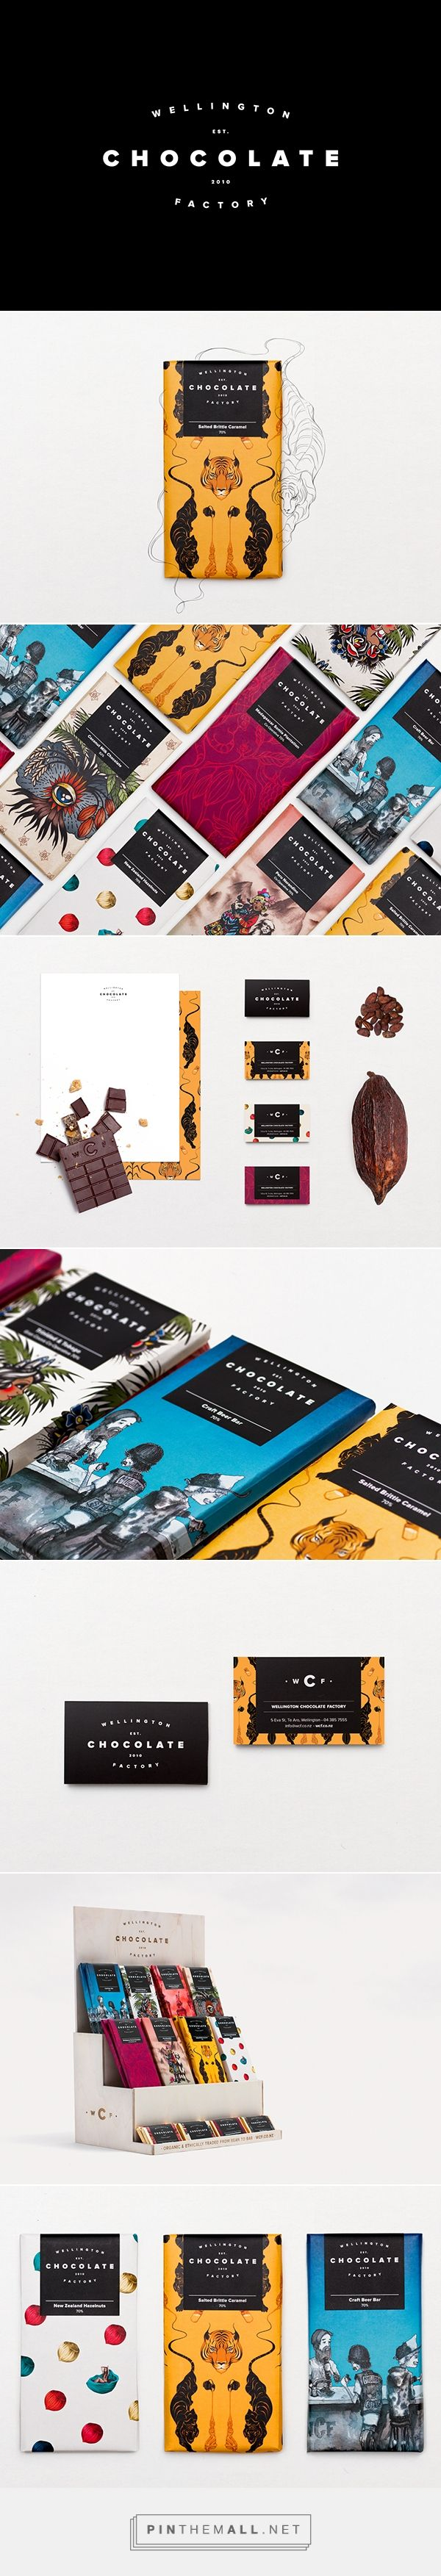 Wellington Chocolate Factory on Behance https://www.behance.net/gallery/13945621/Wellington-Chocolate-Factory - created via http://pinthemall.net